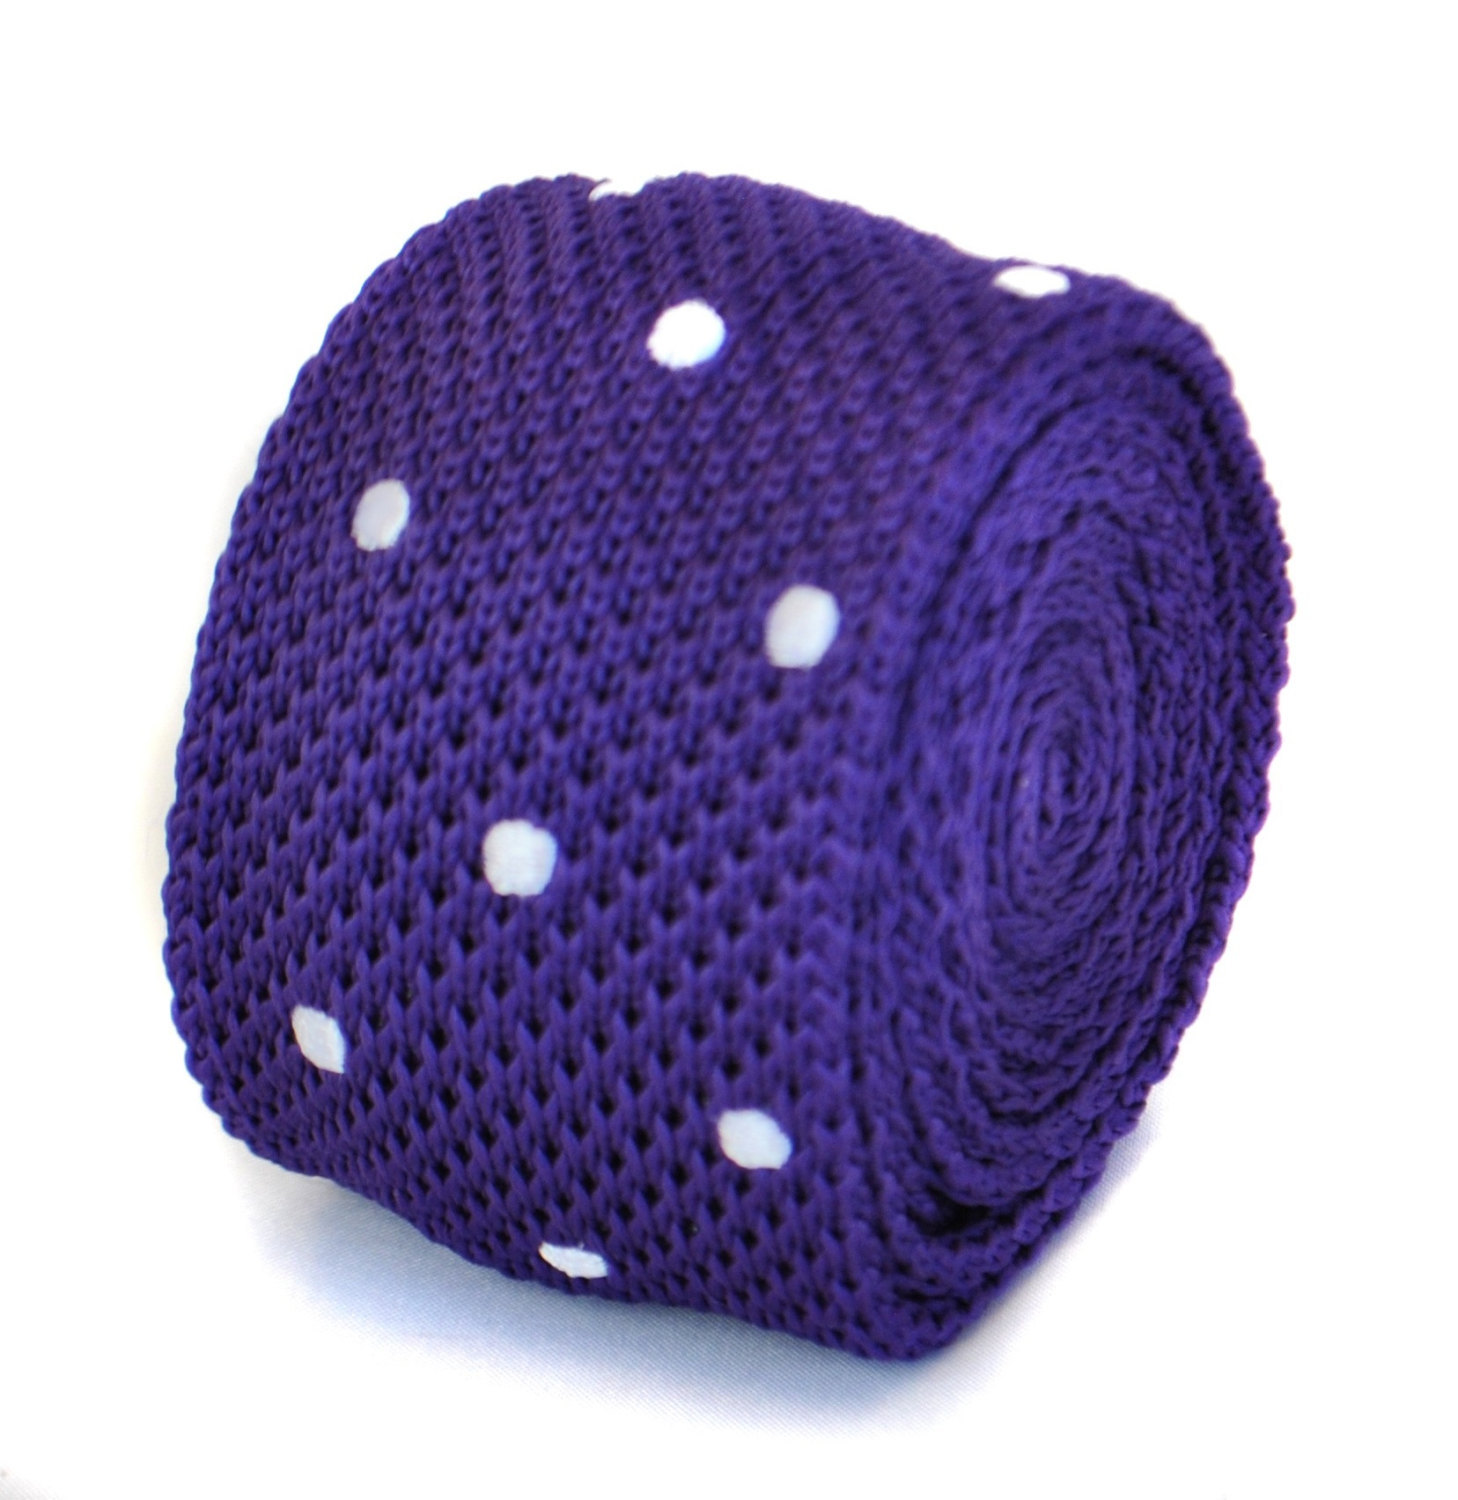 cadbury purple and white polka spot knitted tie by Frederick Thomas FT1850